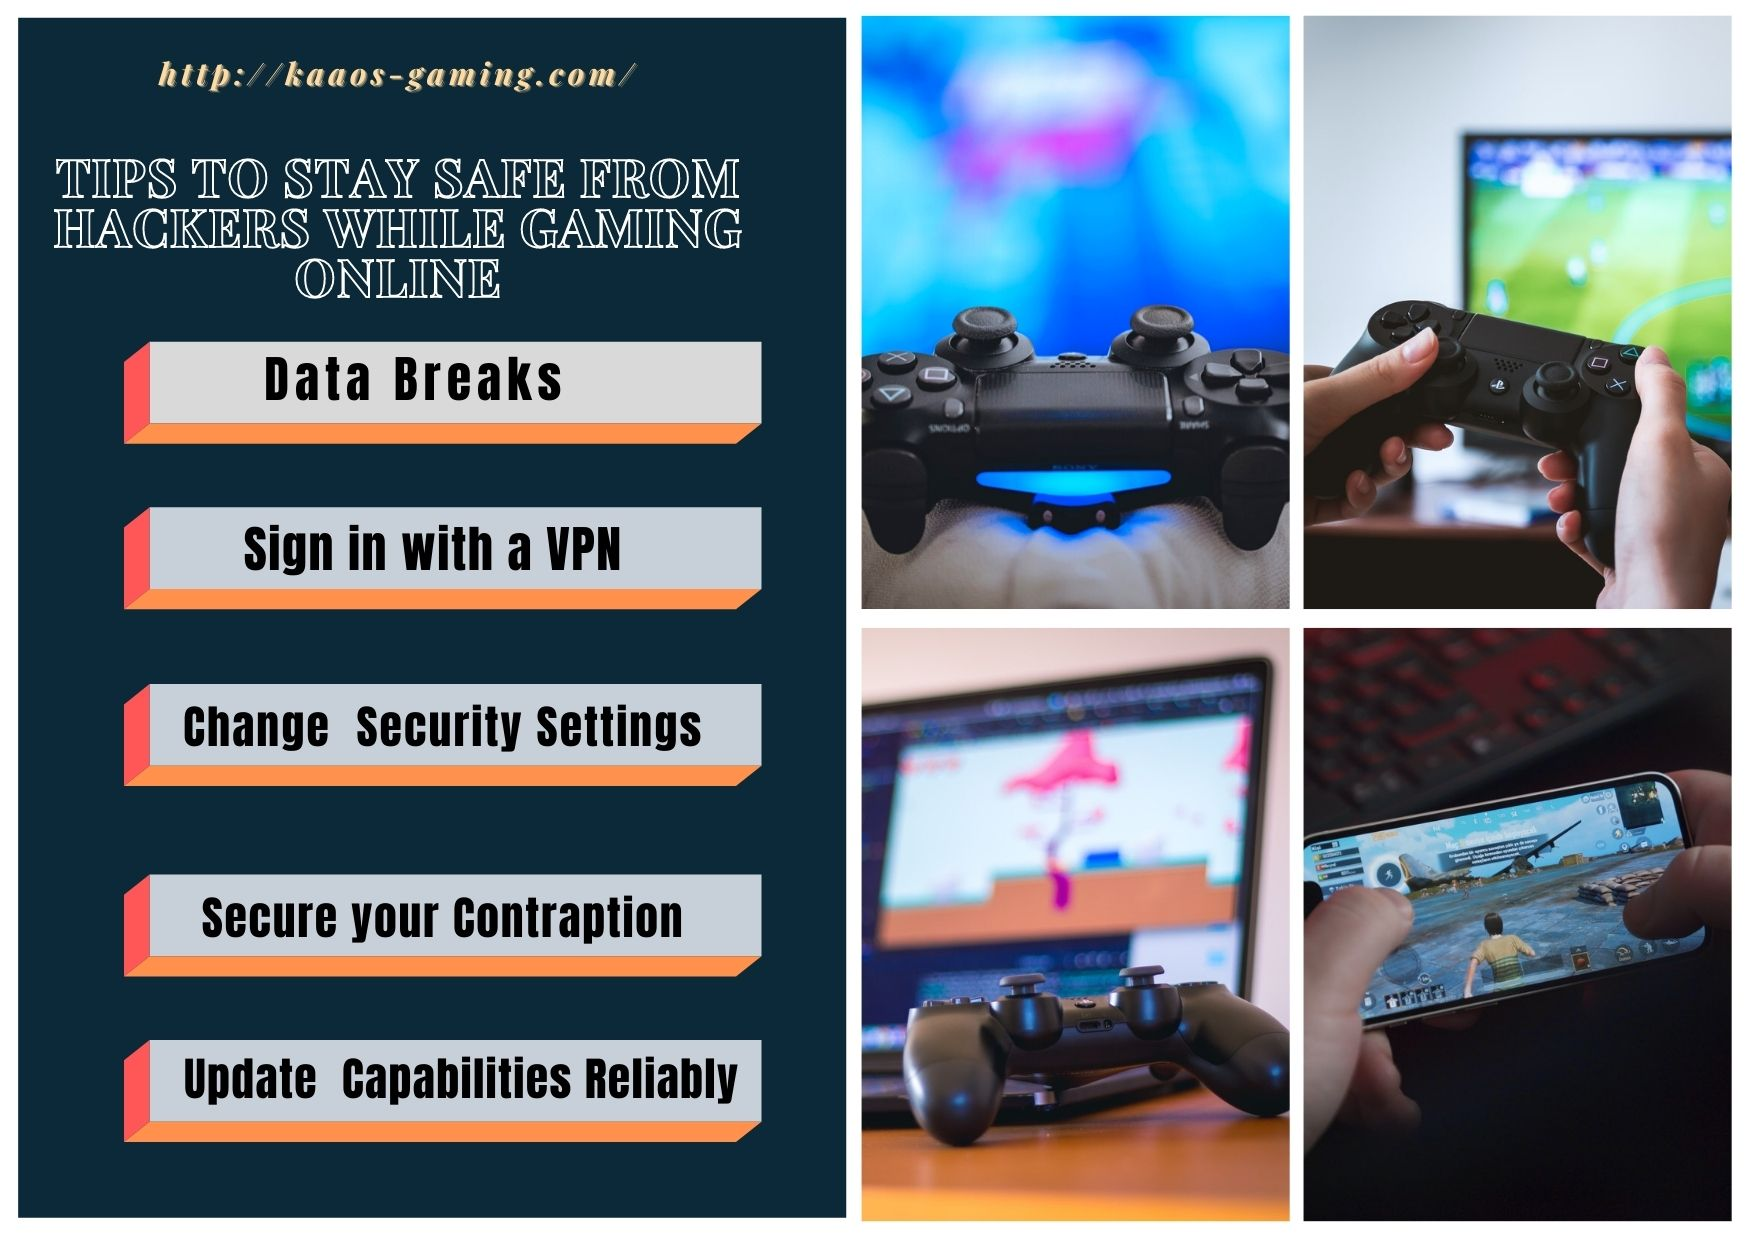 Tips to Stay Safe from hackers while Gaming Online